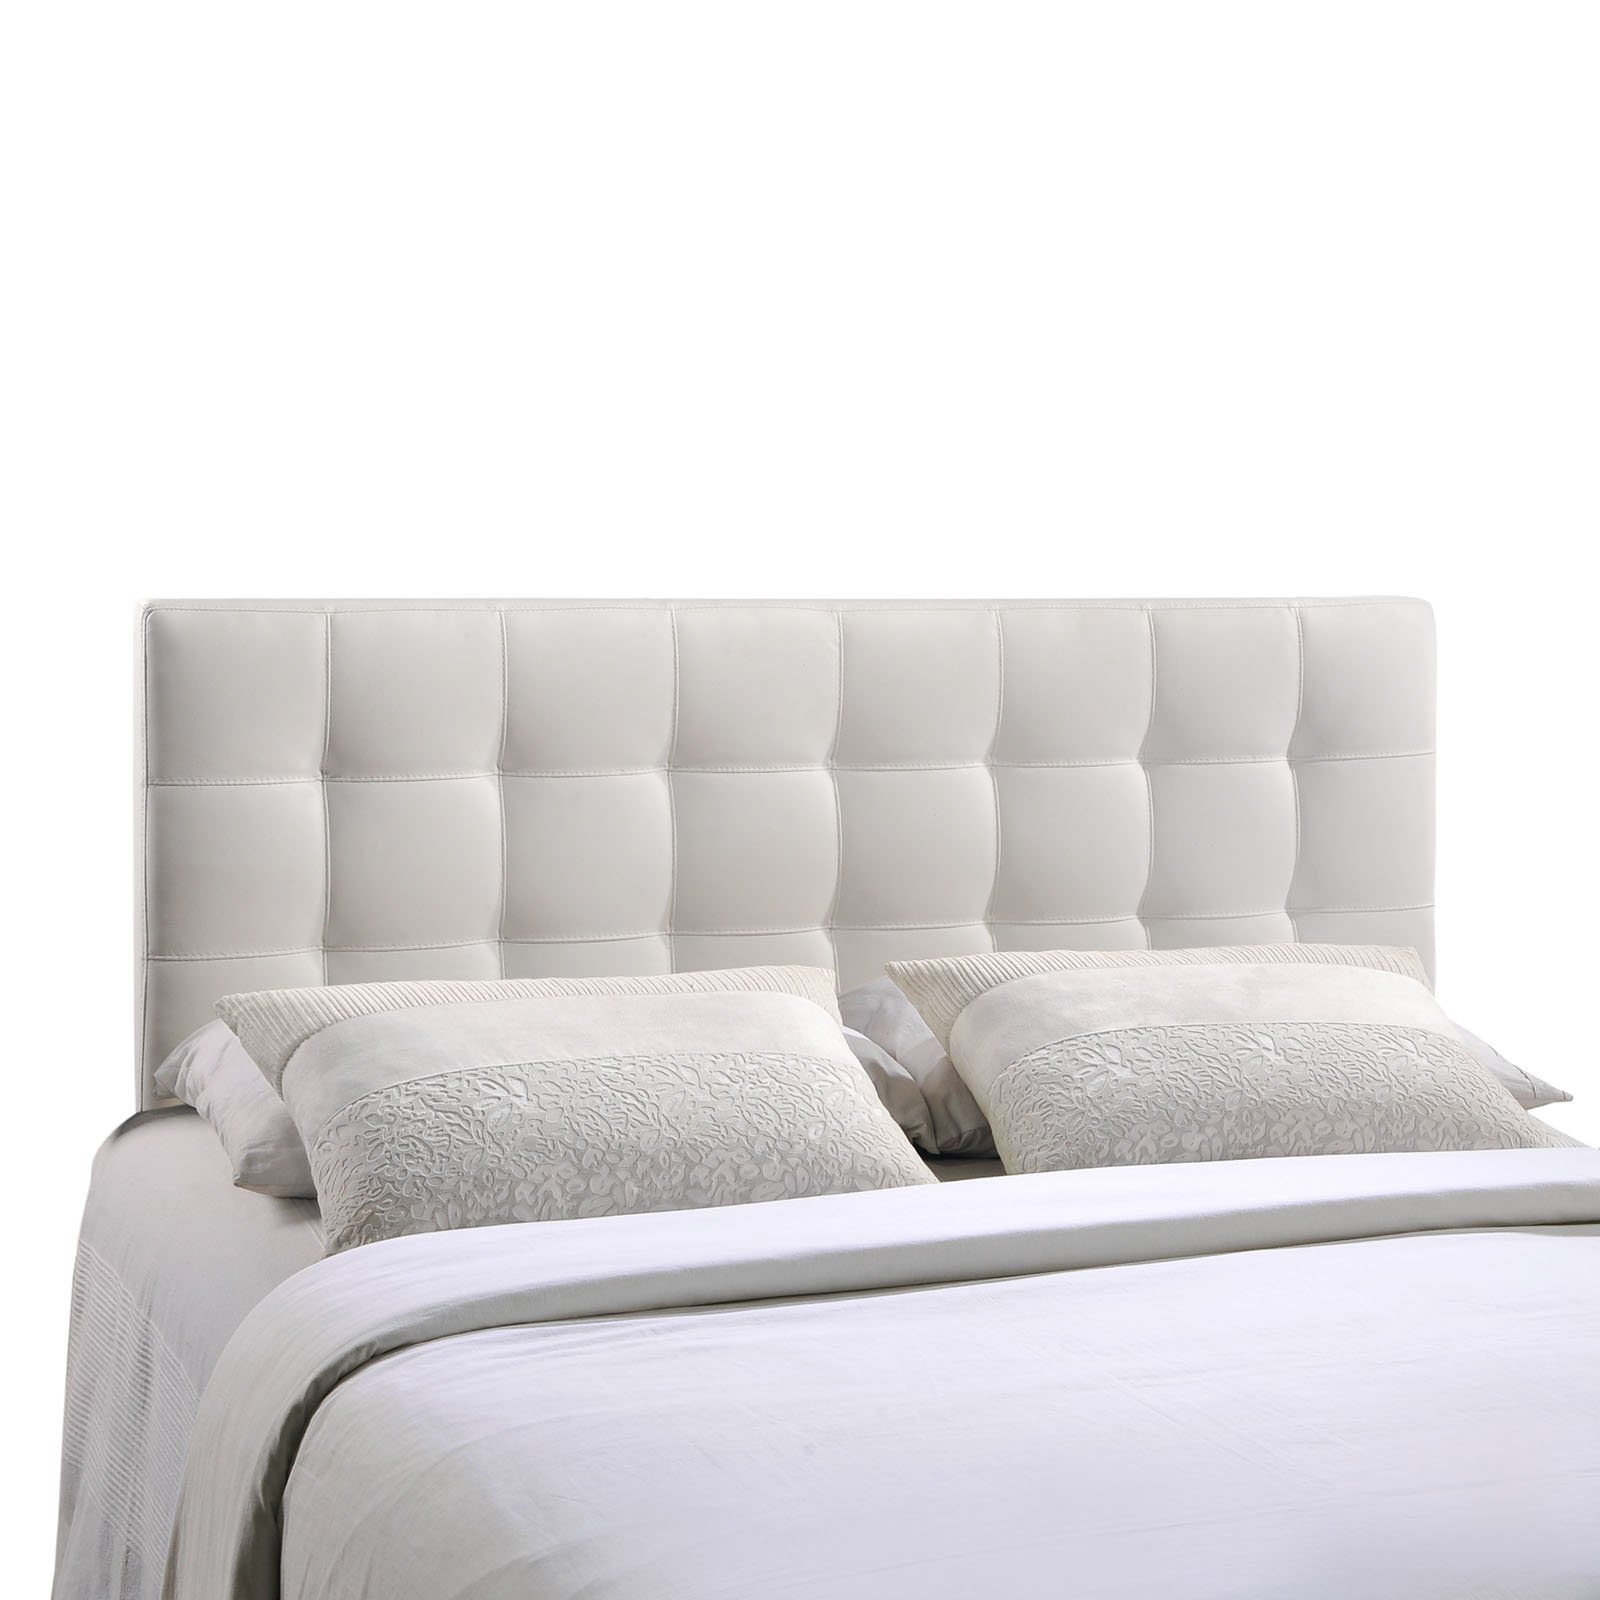 Modway Lily Tufted Faux Leather Upholstered King Headboard in White by Modway